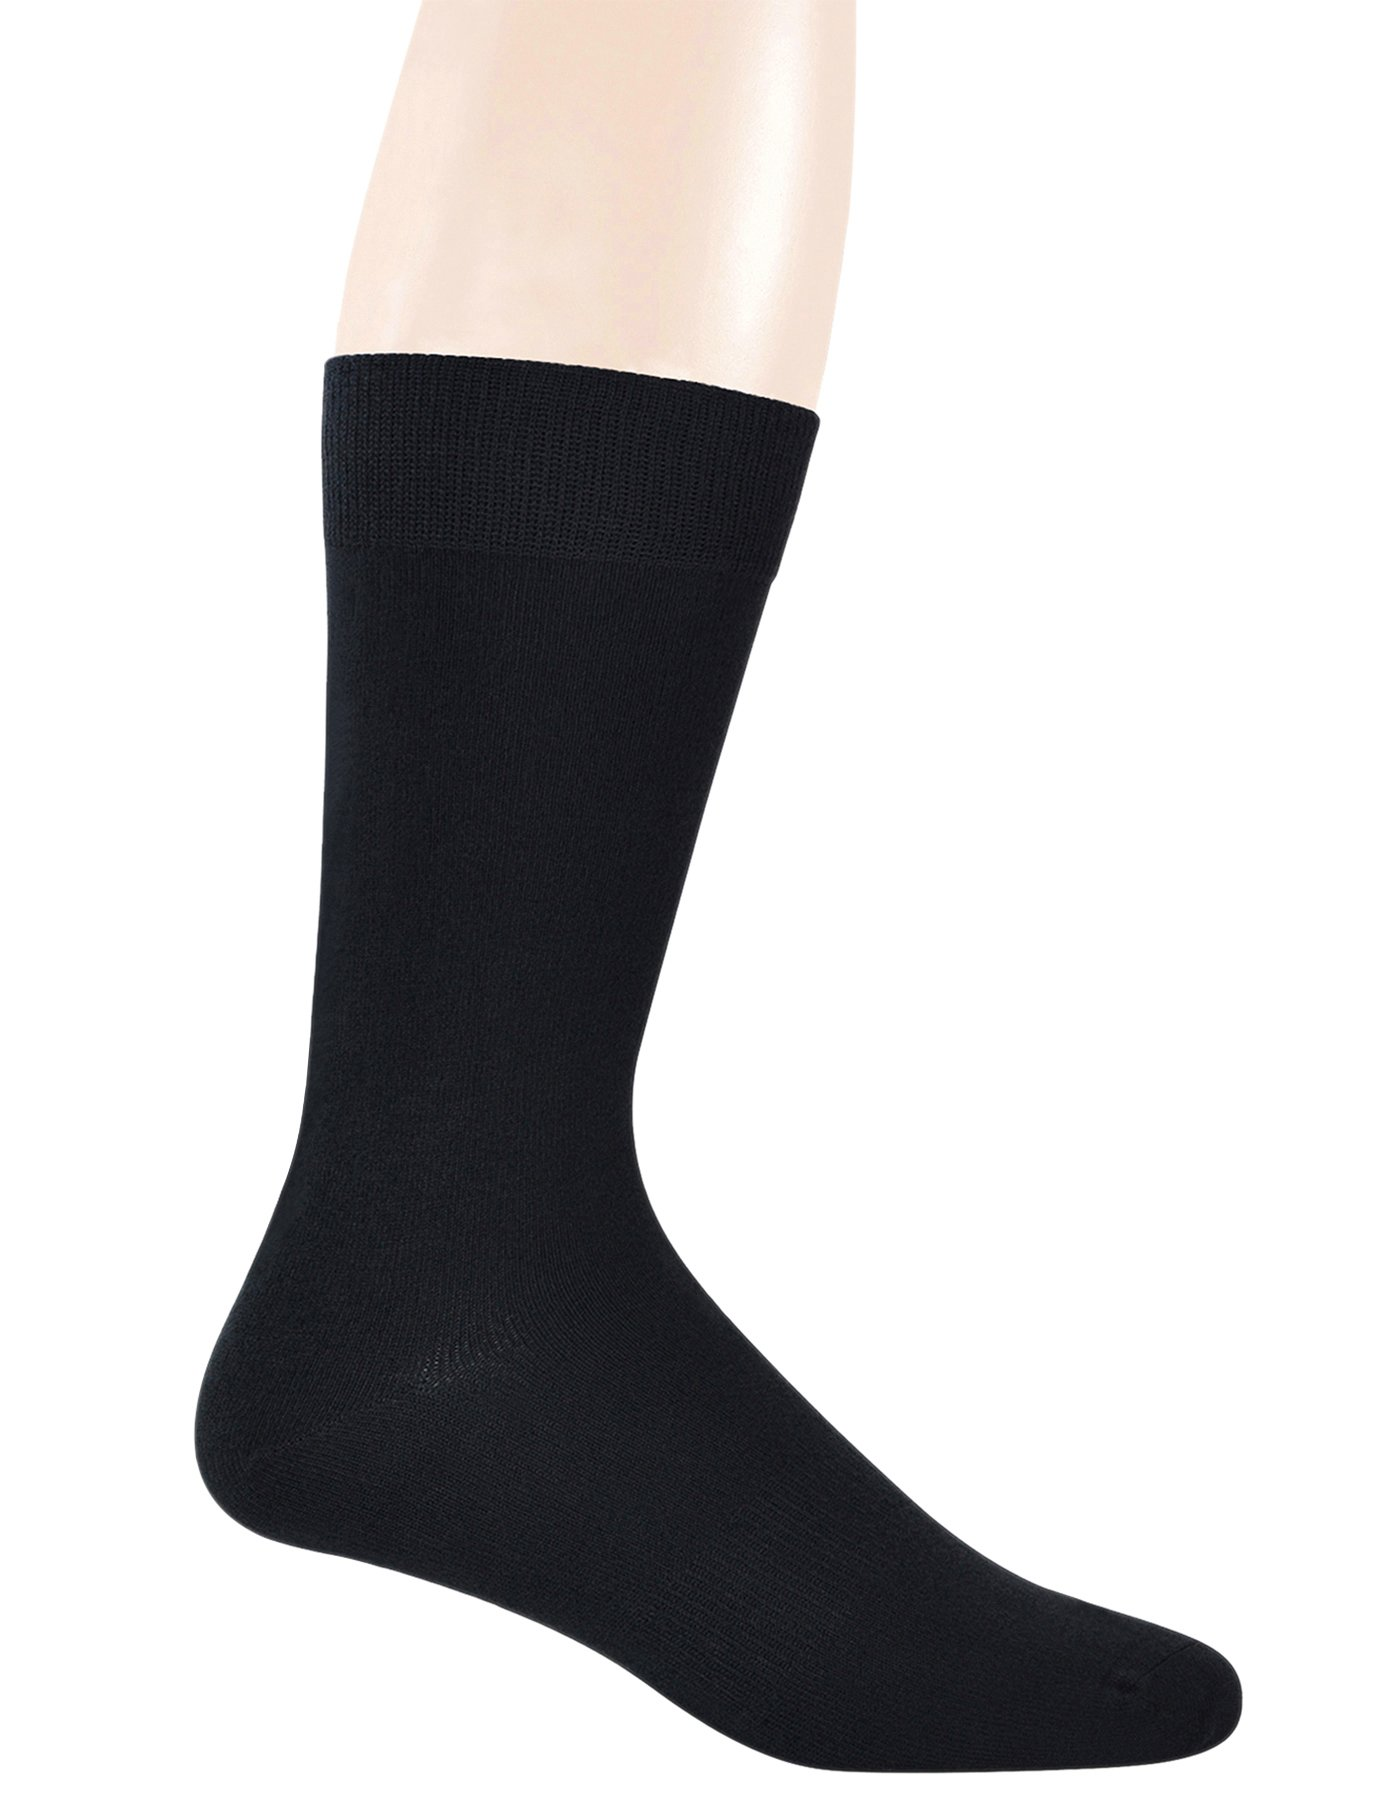 Yomandamor 5 Pairs Men's Bamboo Crew Dress Socks with Arch Support and Seamless Toe